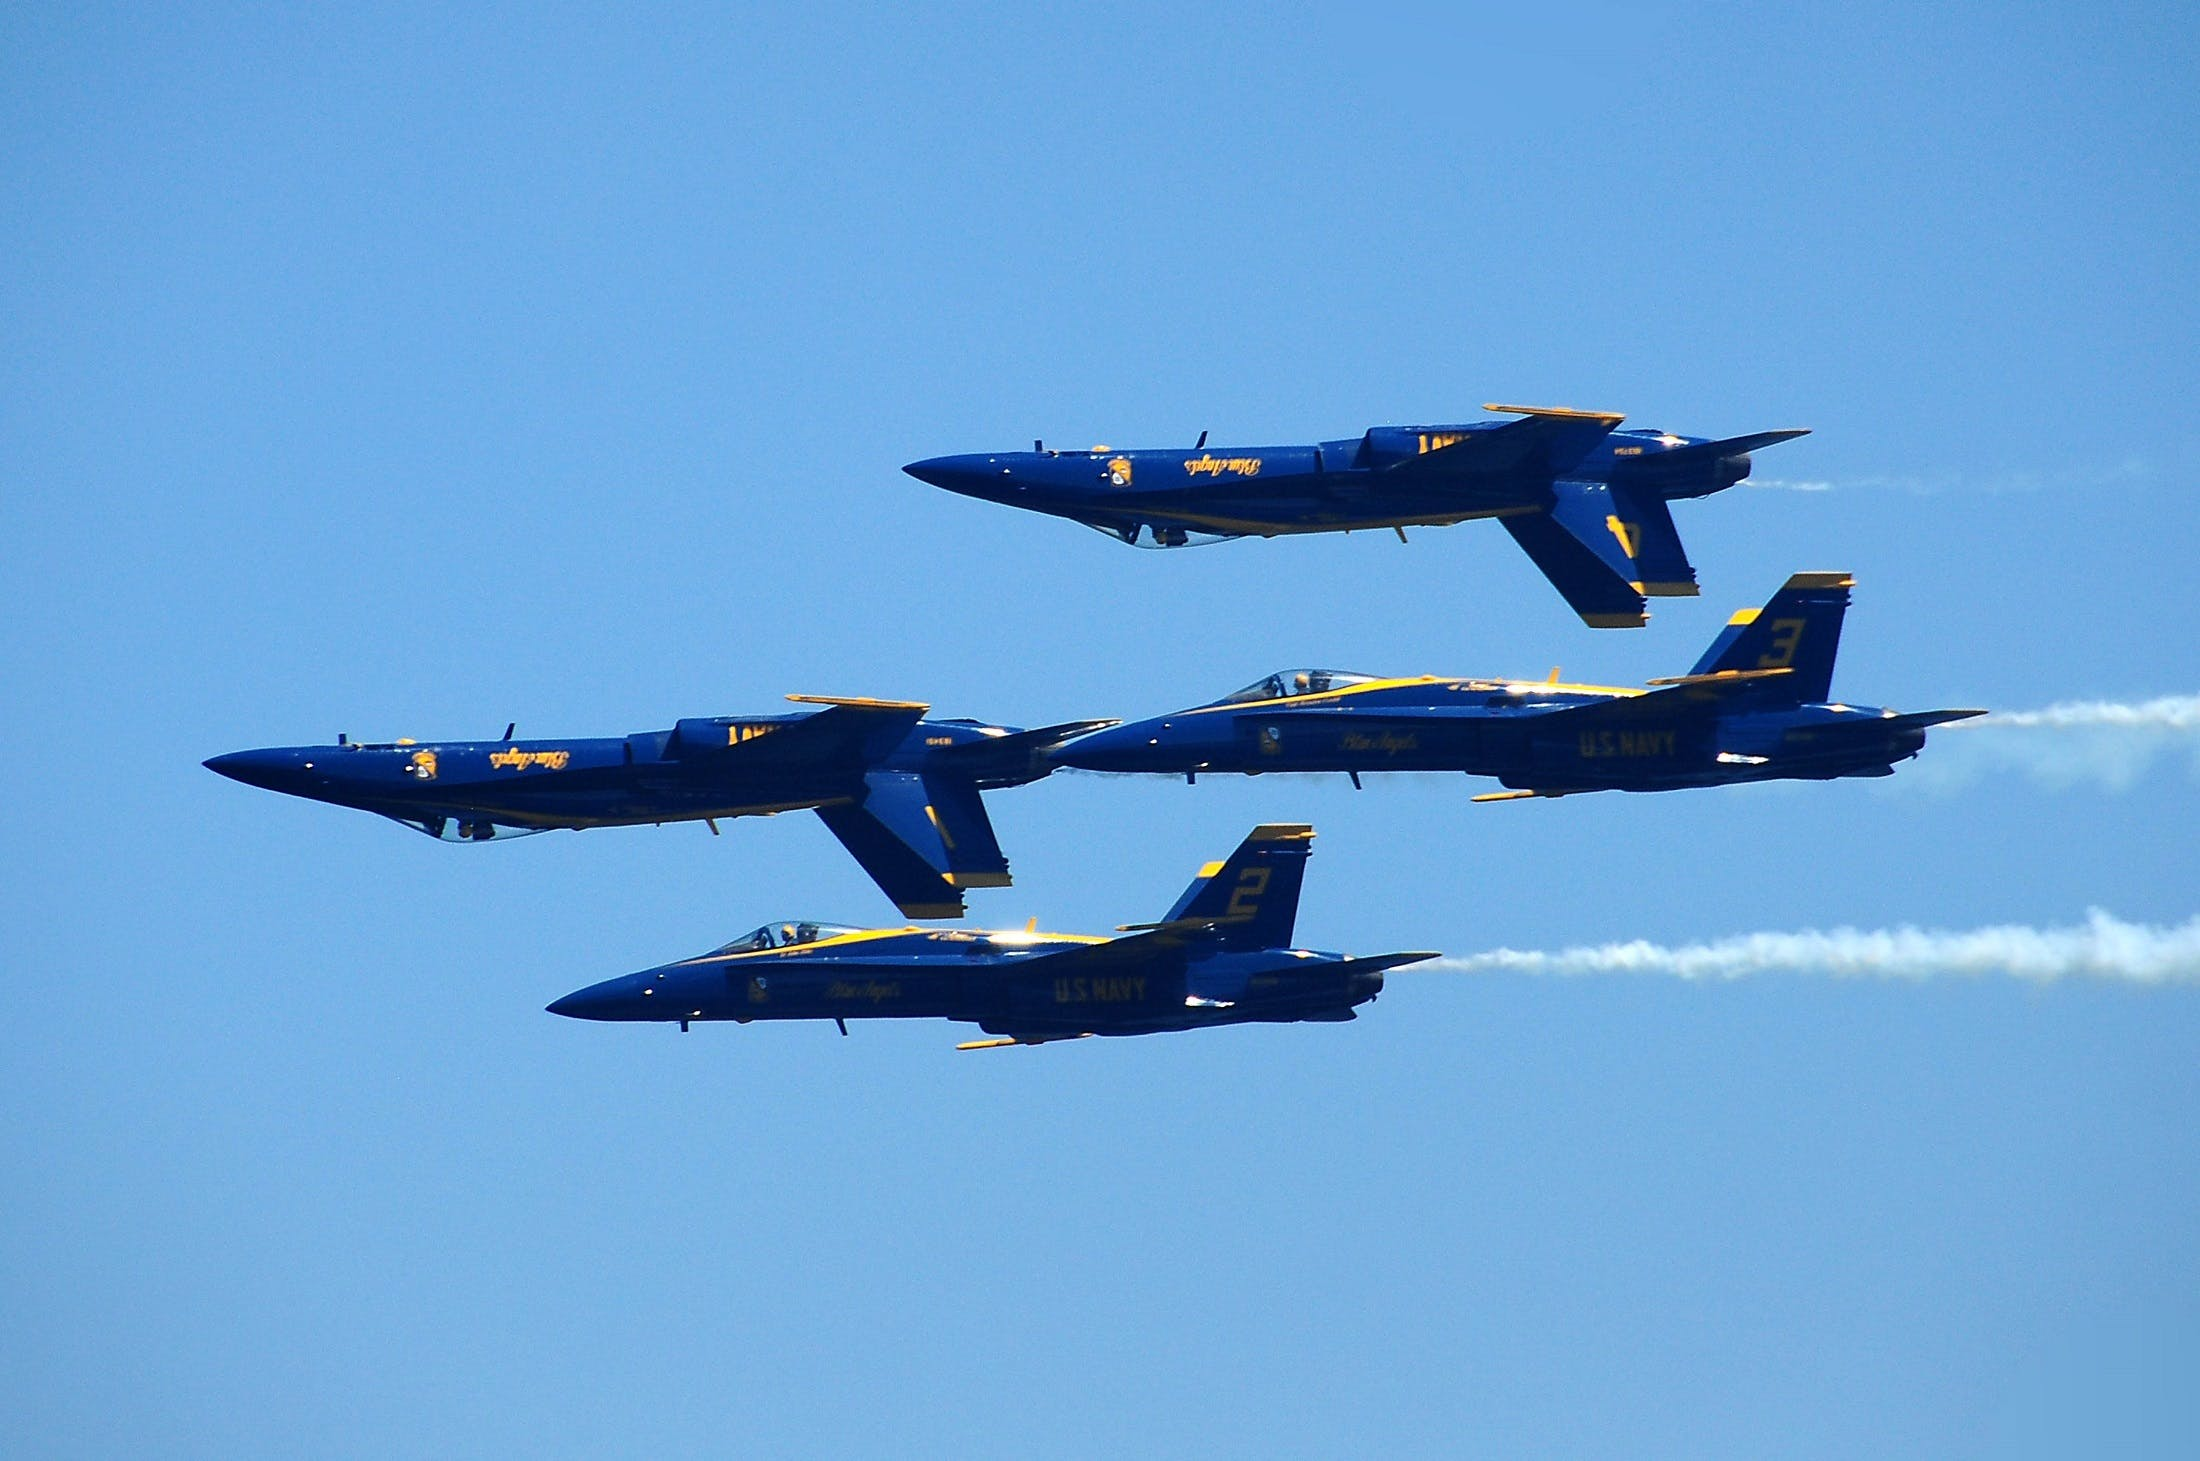 Four Blue Fighter Jets on Mid Air